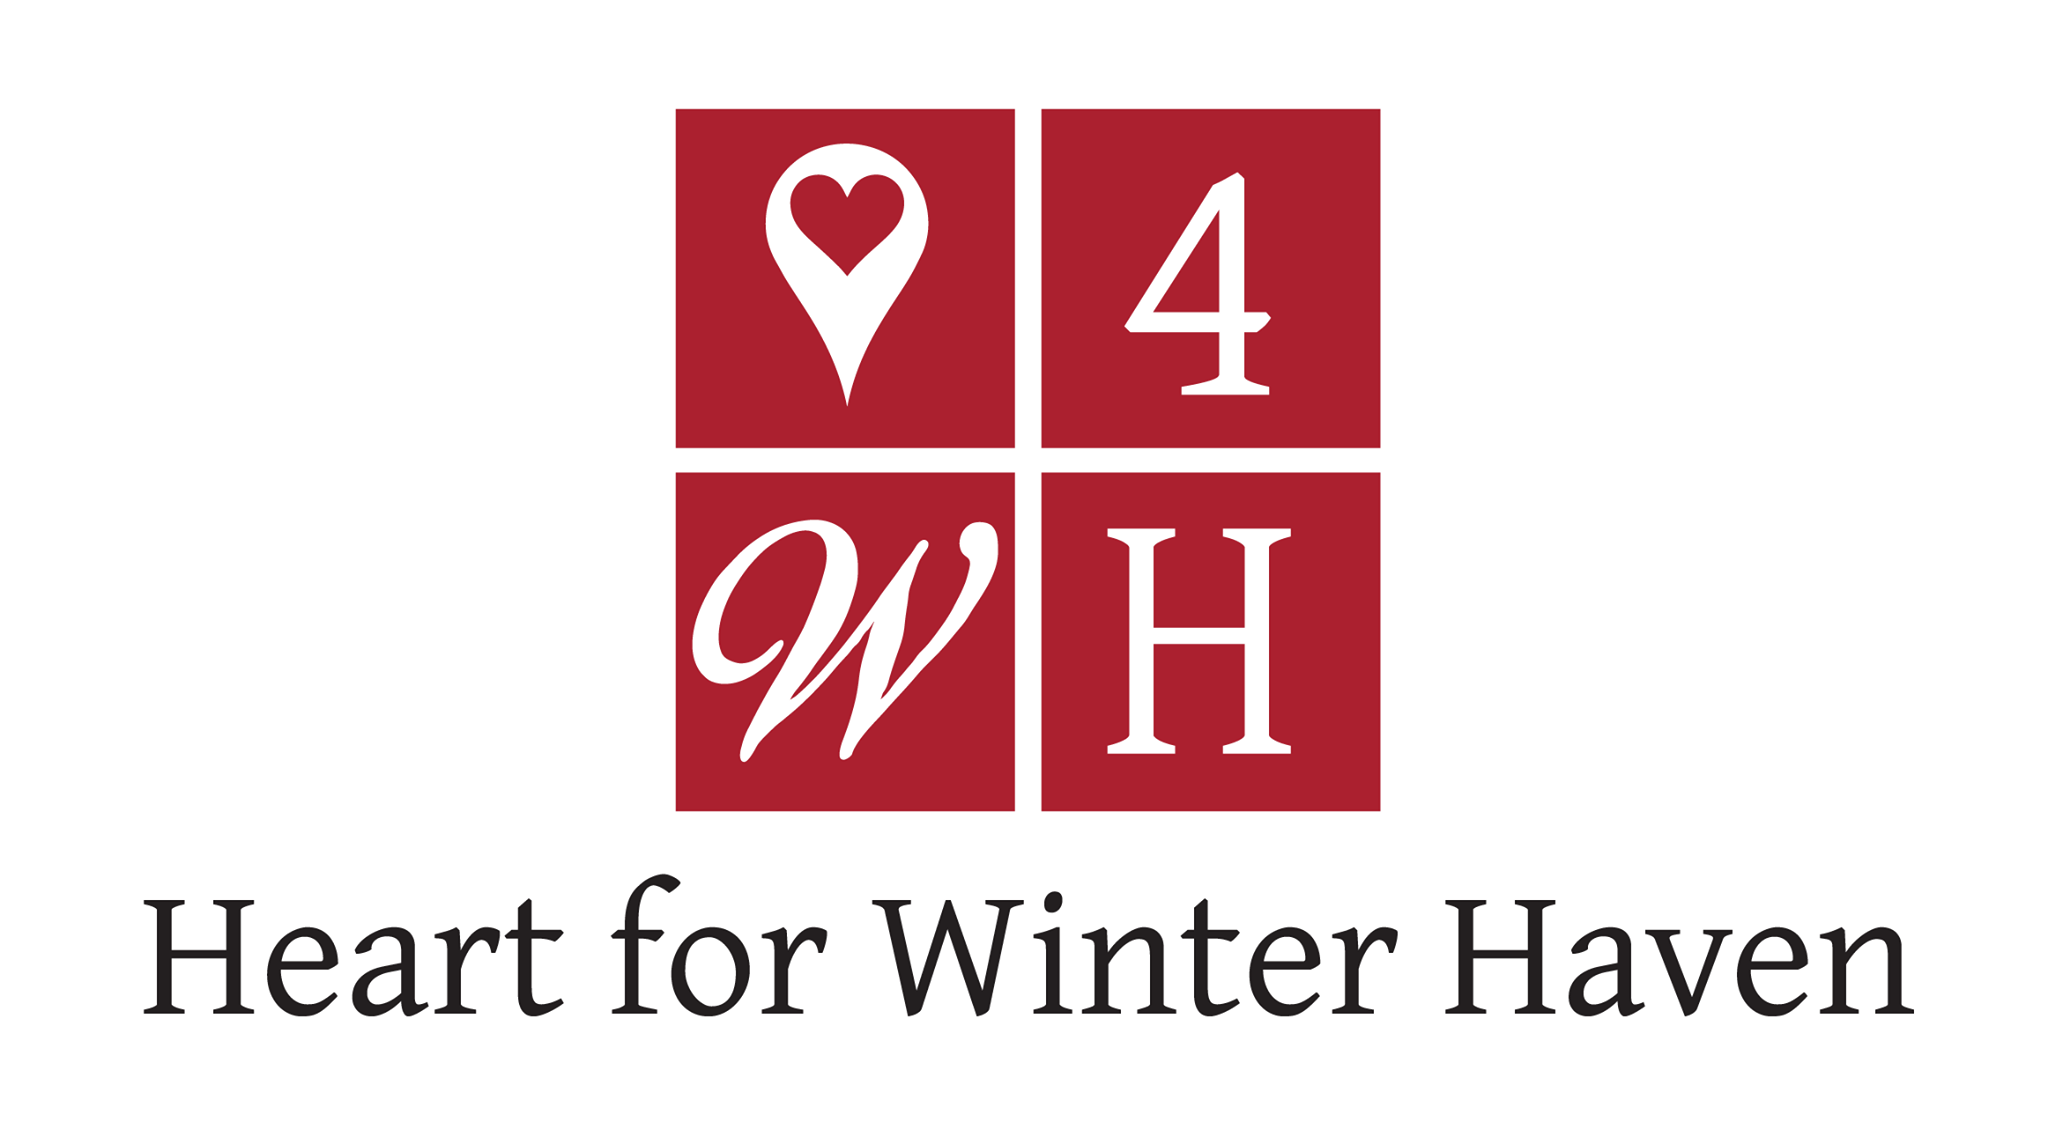 Heart 4 Winter Haven